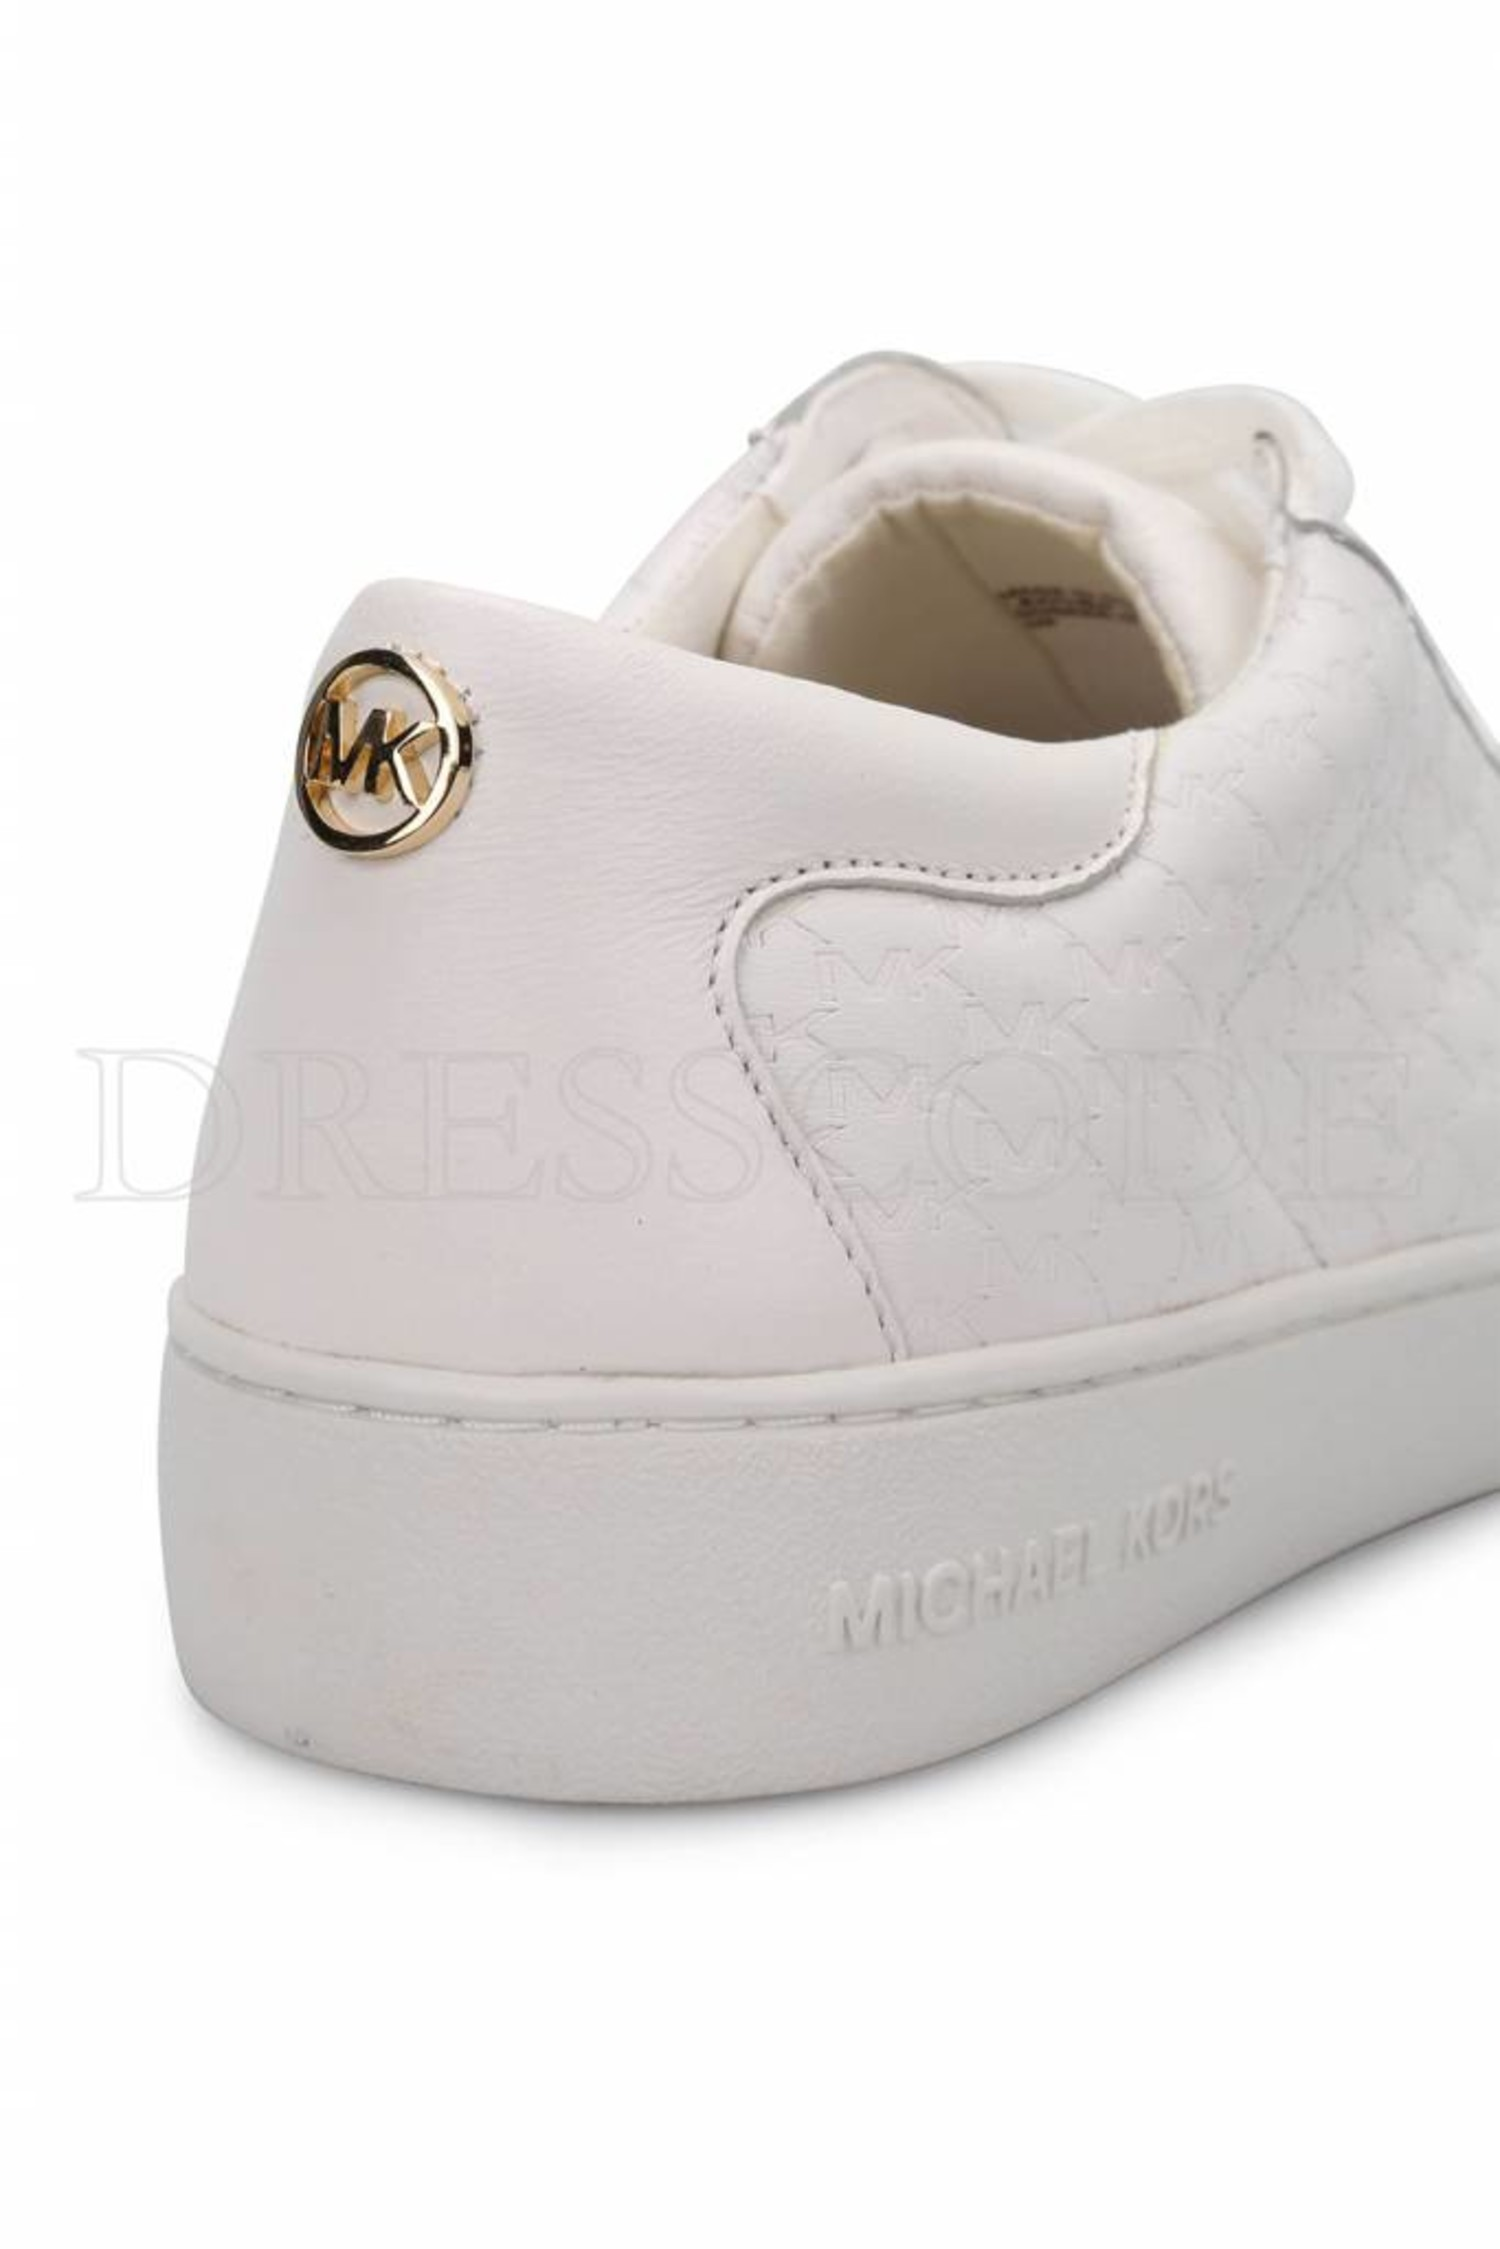 Michael Kors wit Colby sneaker